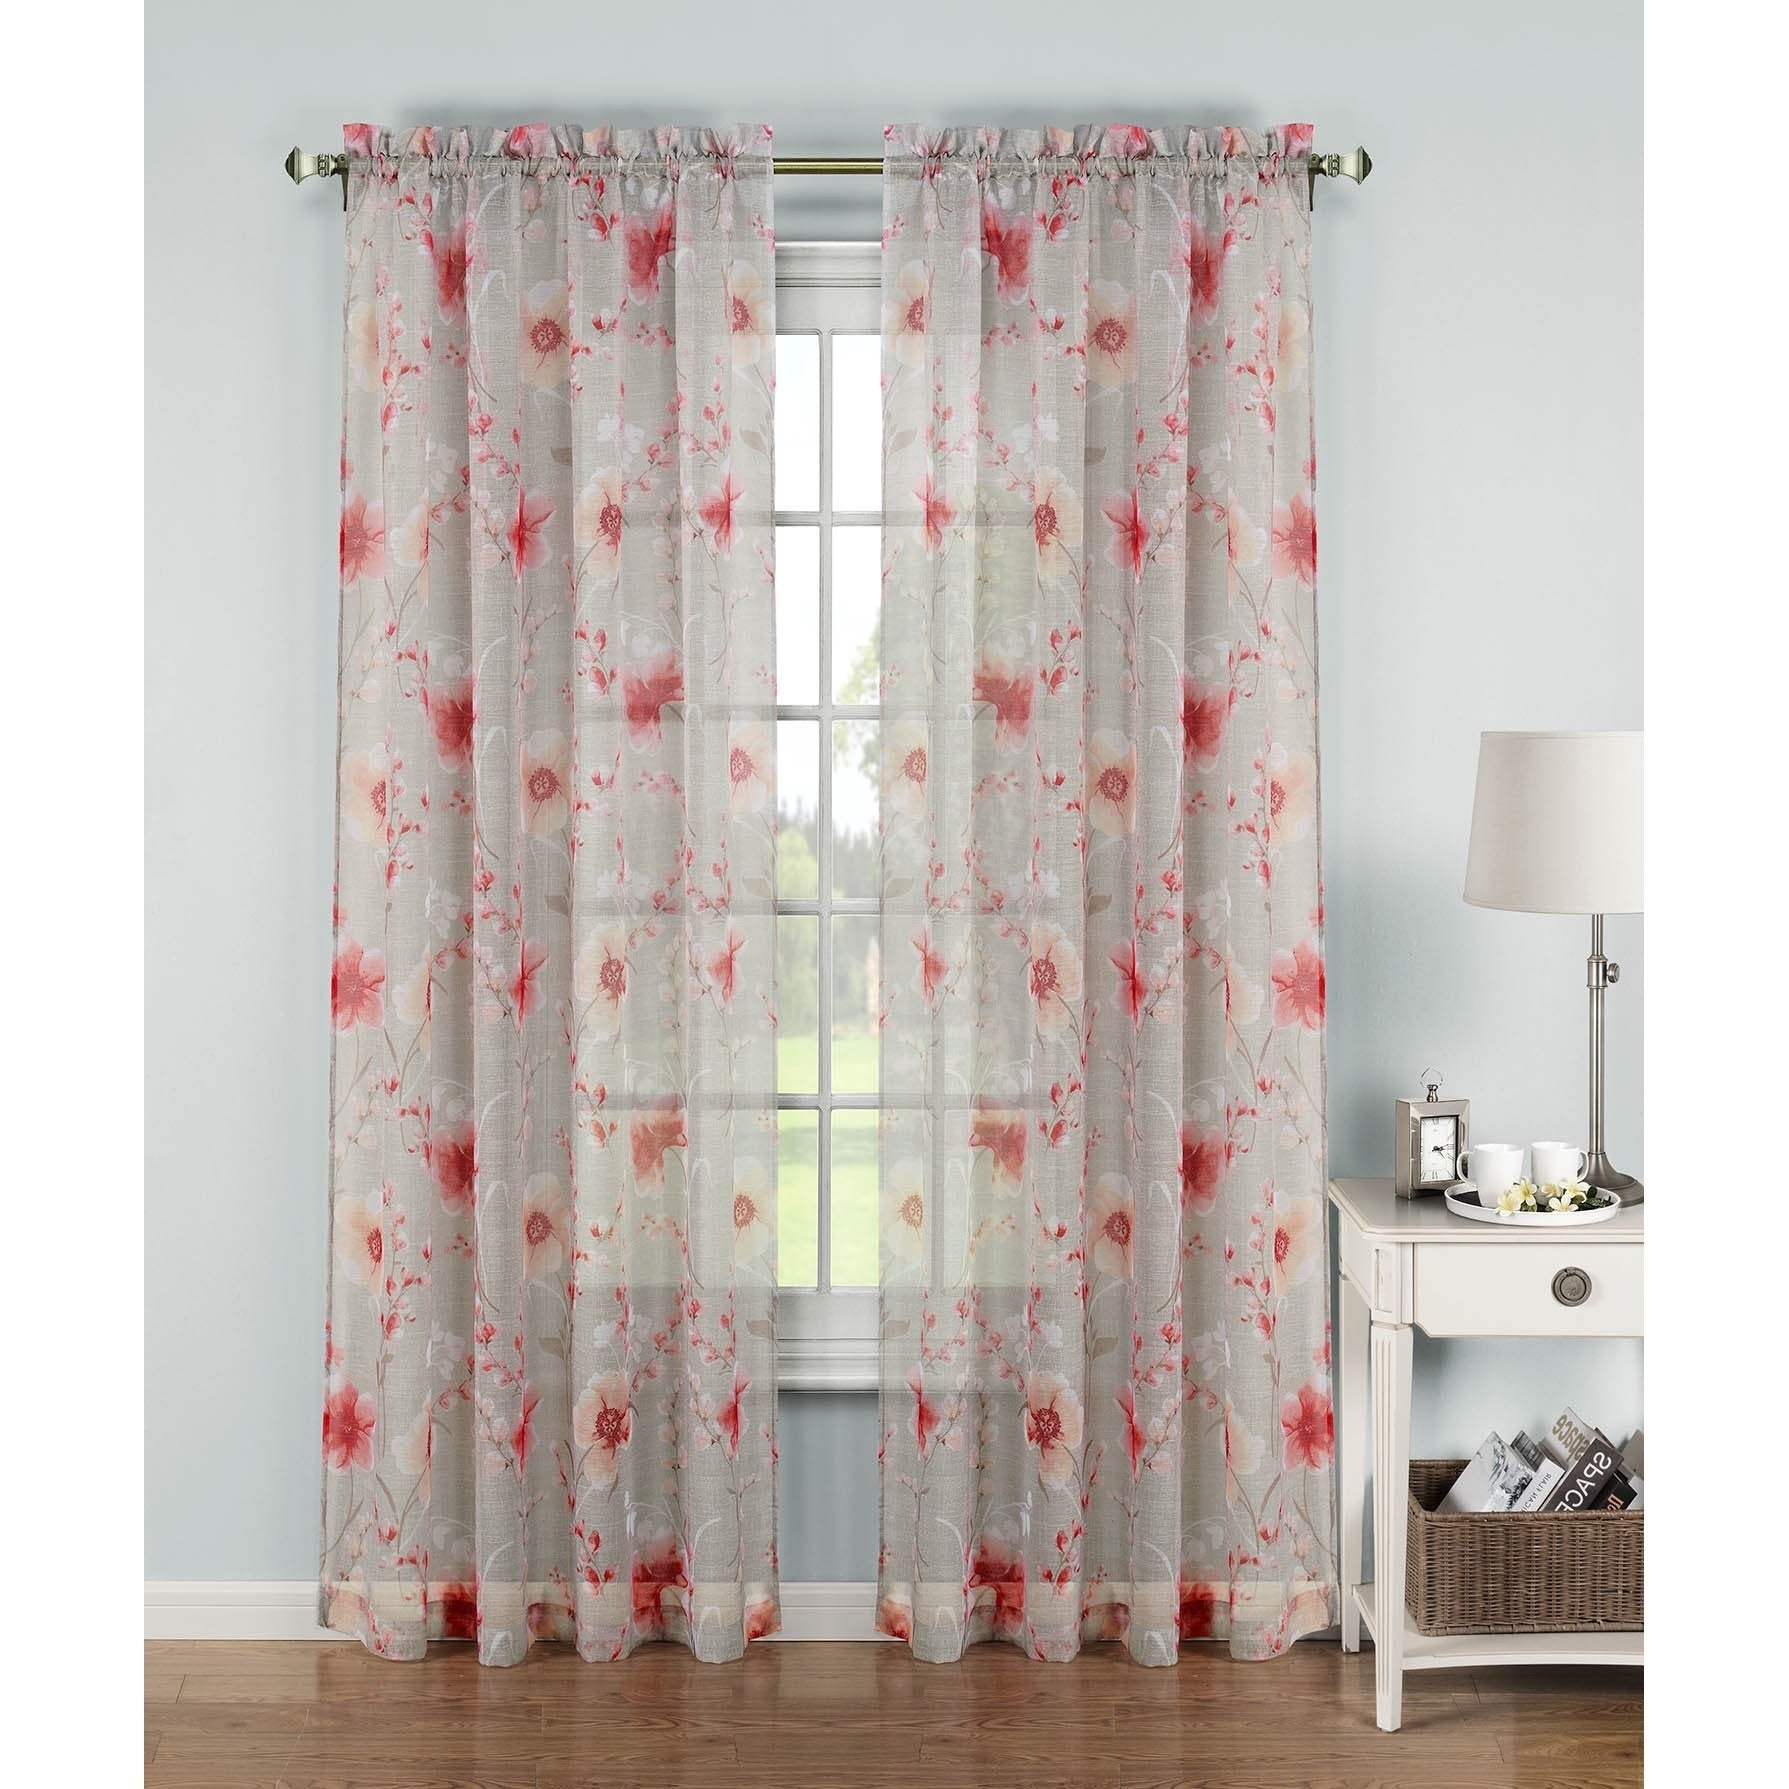 Window-Elements-Pamela-Printed-Sheer-Extra-Wide-96-inch-Rod-Pocket-Curtain-Panel thumbnail 7